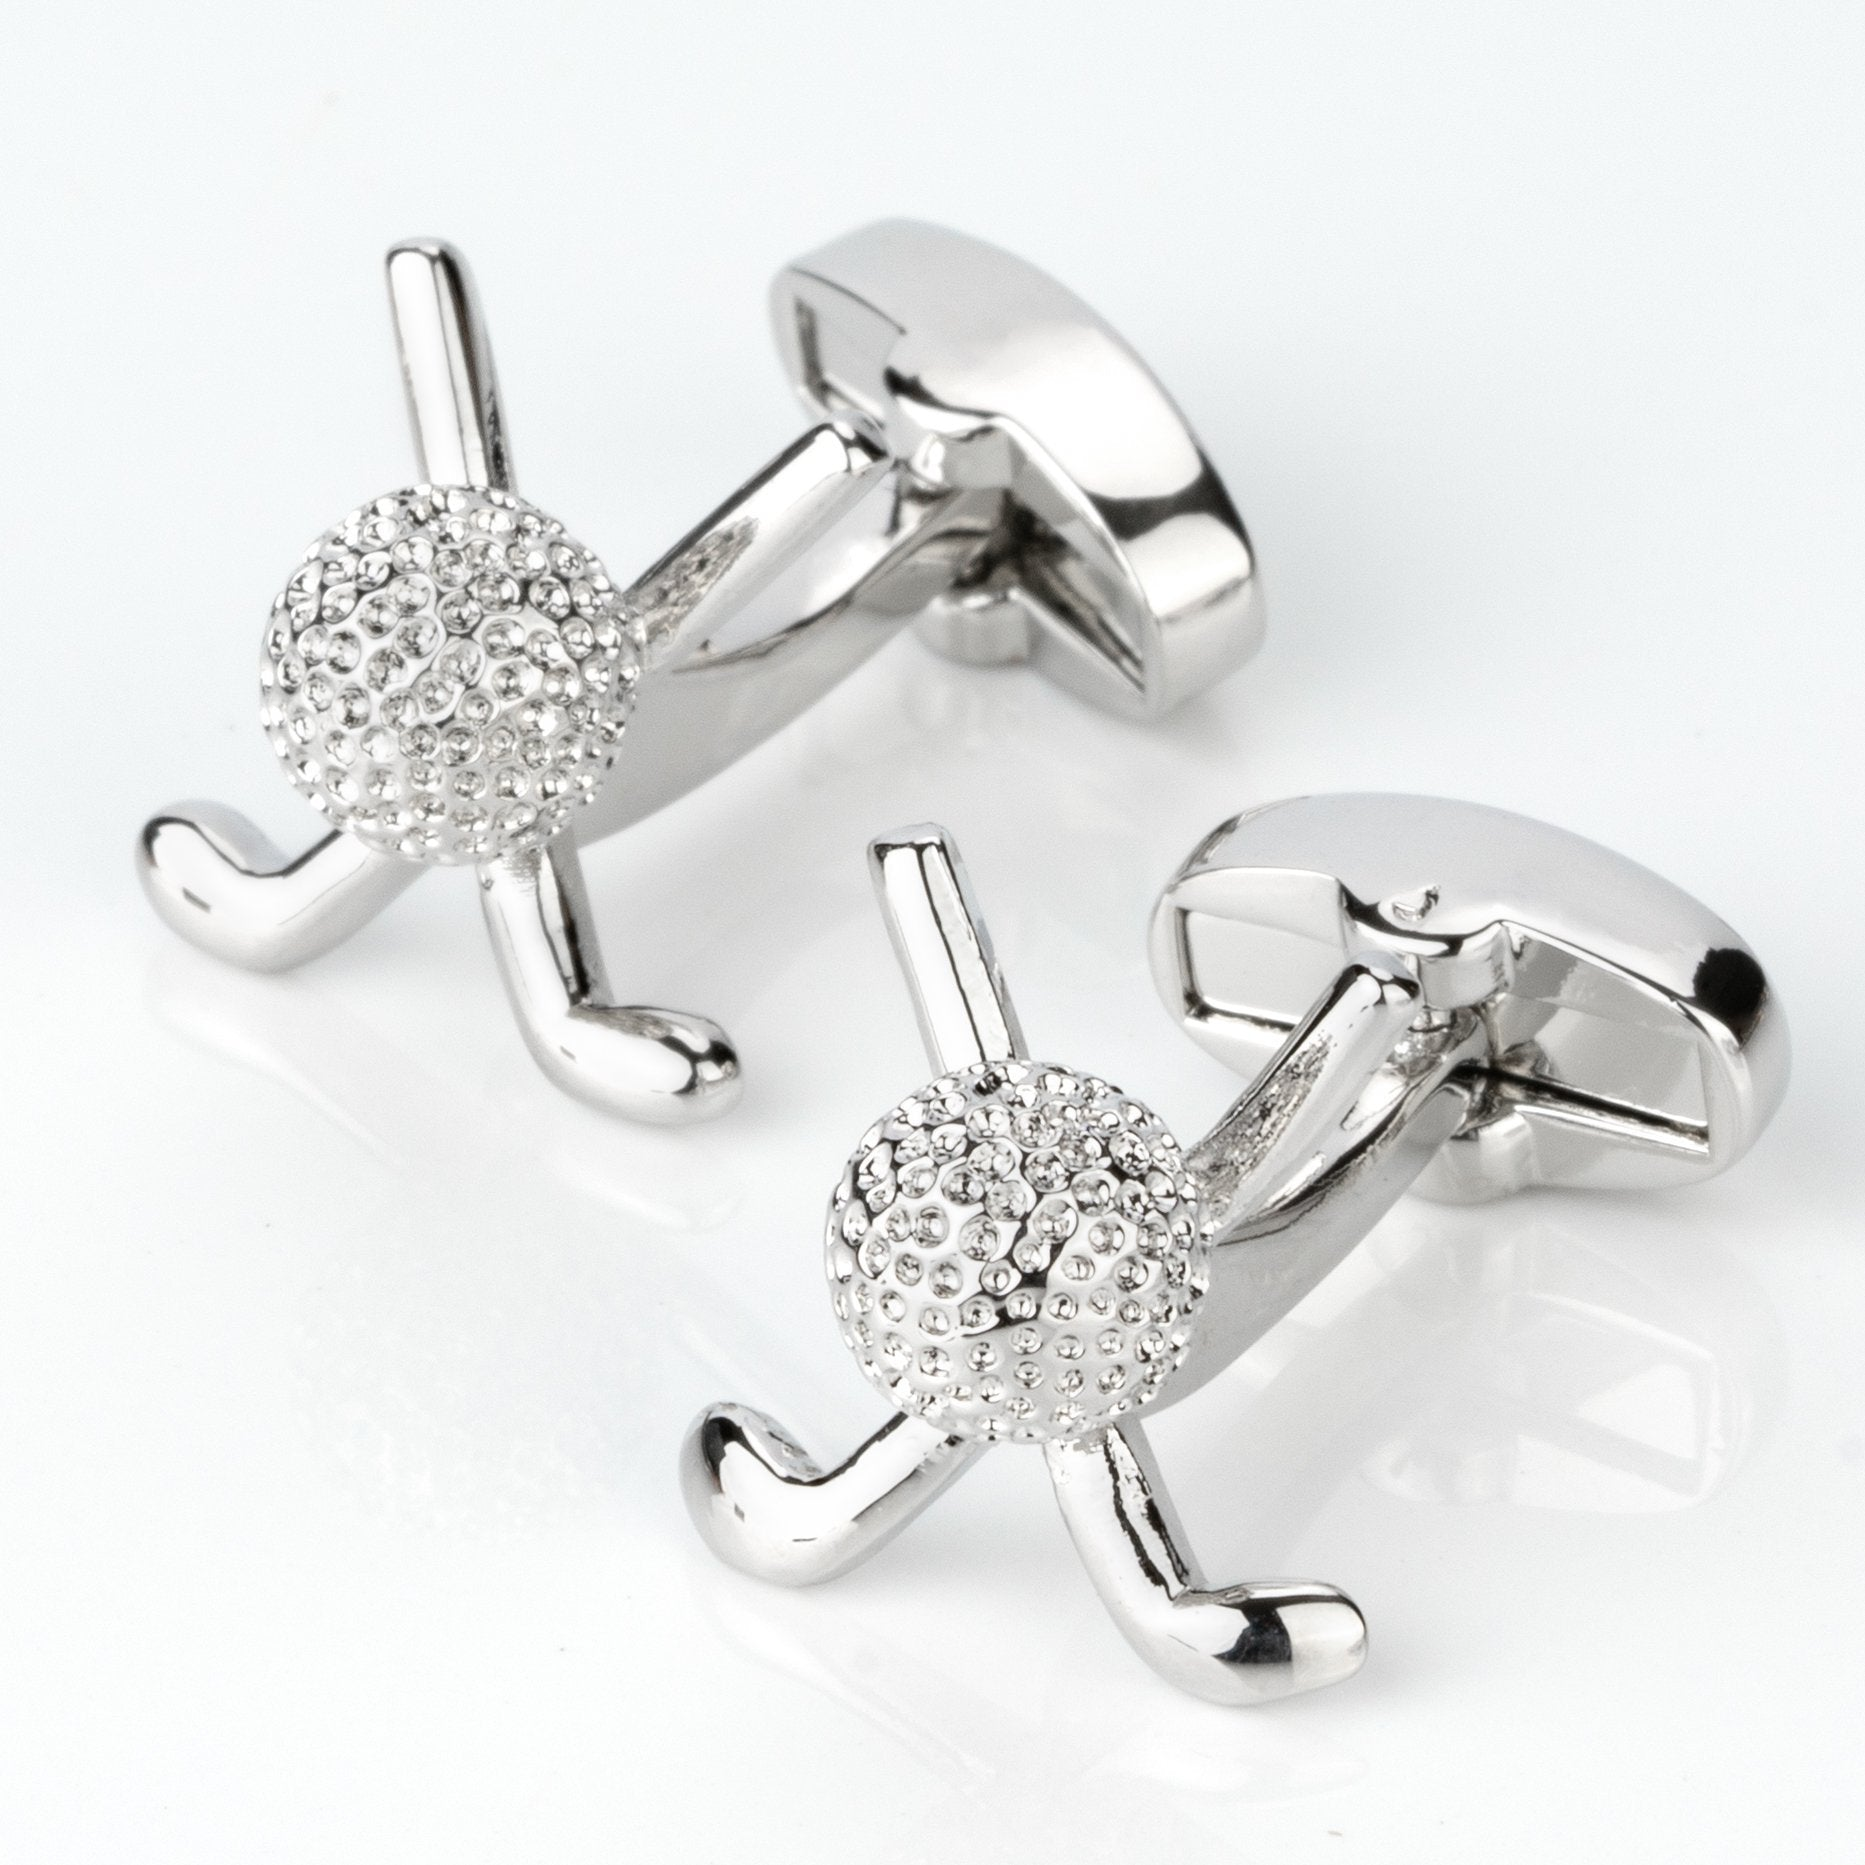 Golf Club and Ball Cufflinks Novelty Cufflinks Clinks Australia